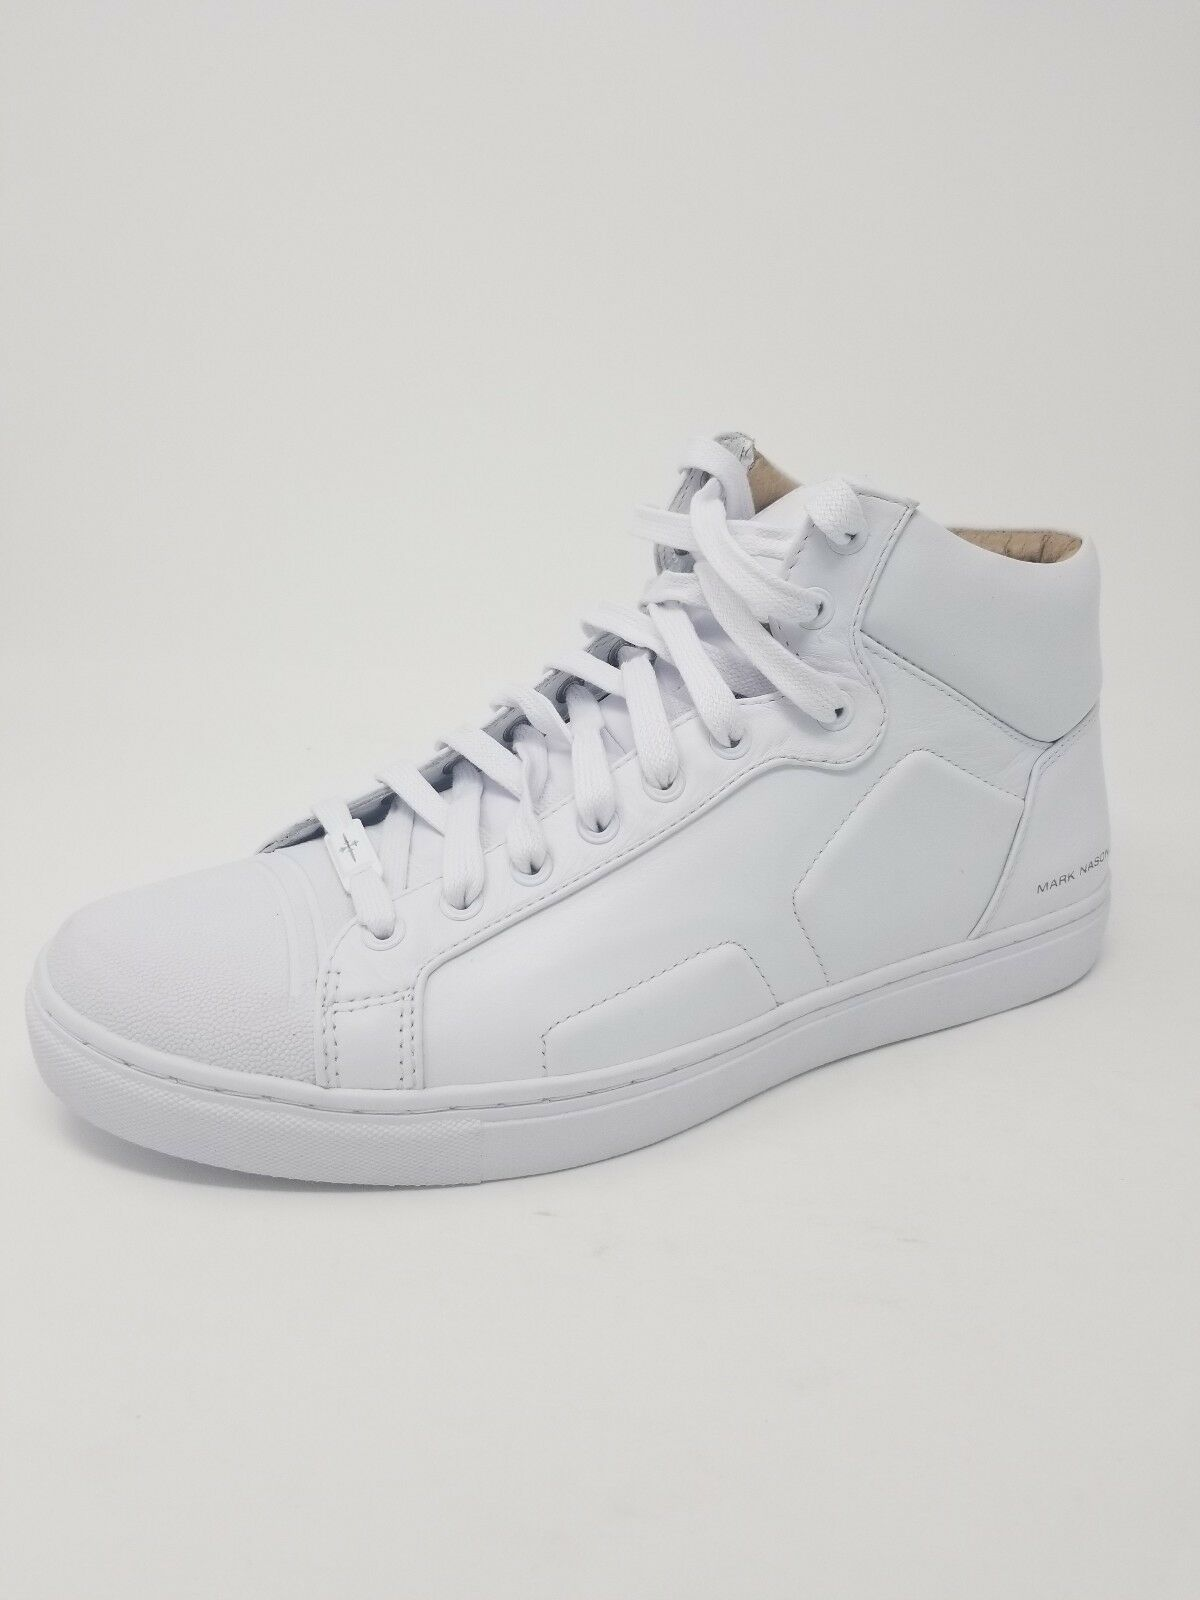 Mark Nason Los Angeles Skechers Mens Spring High Top White Sneakers shoes Sz. 11